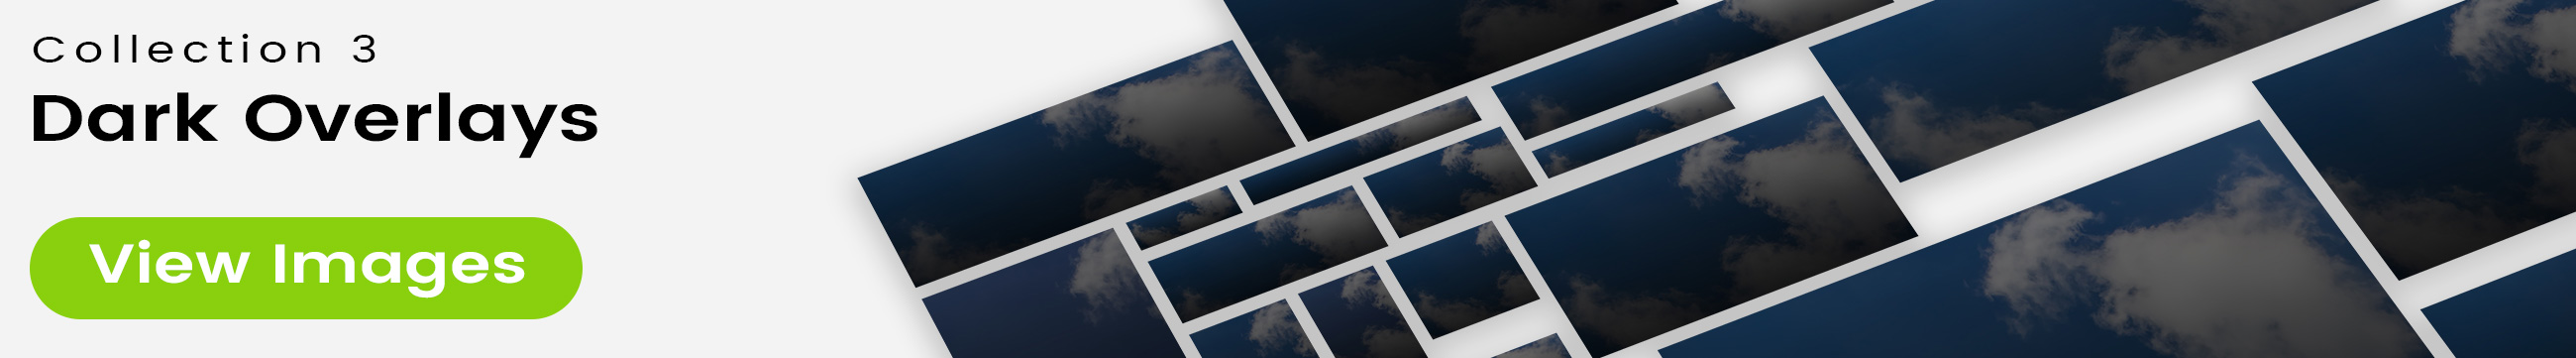 See 25 bonus images included with clouds stock image 9475. Collection 3 of 4 features a dark overlay design.